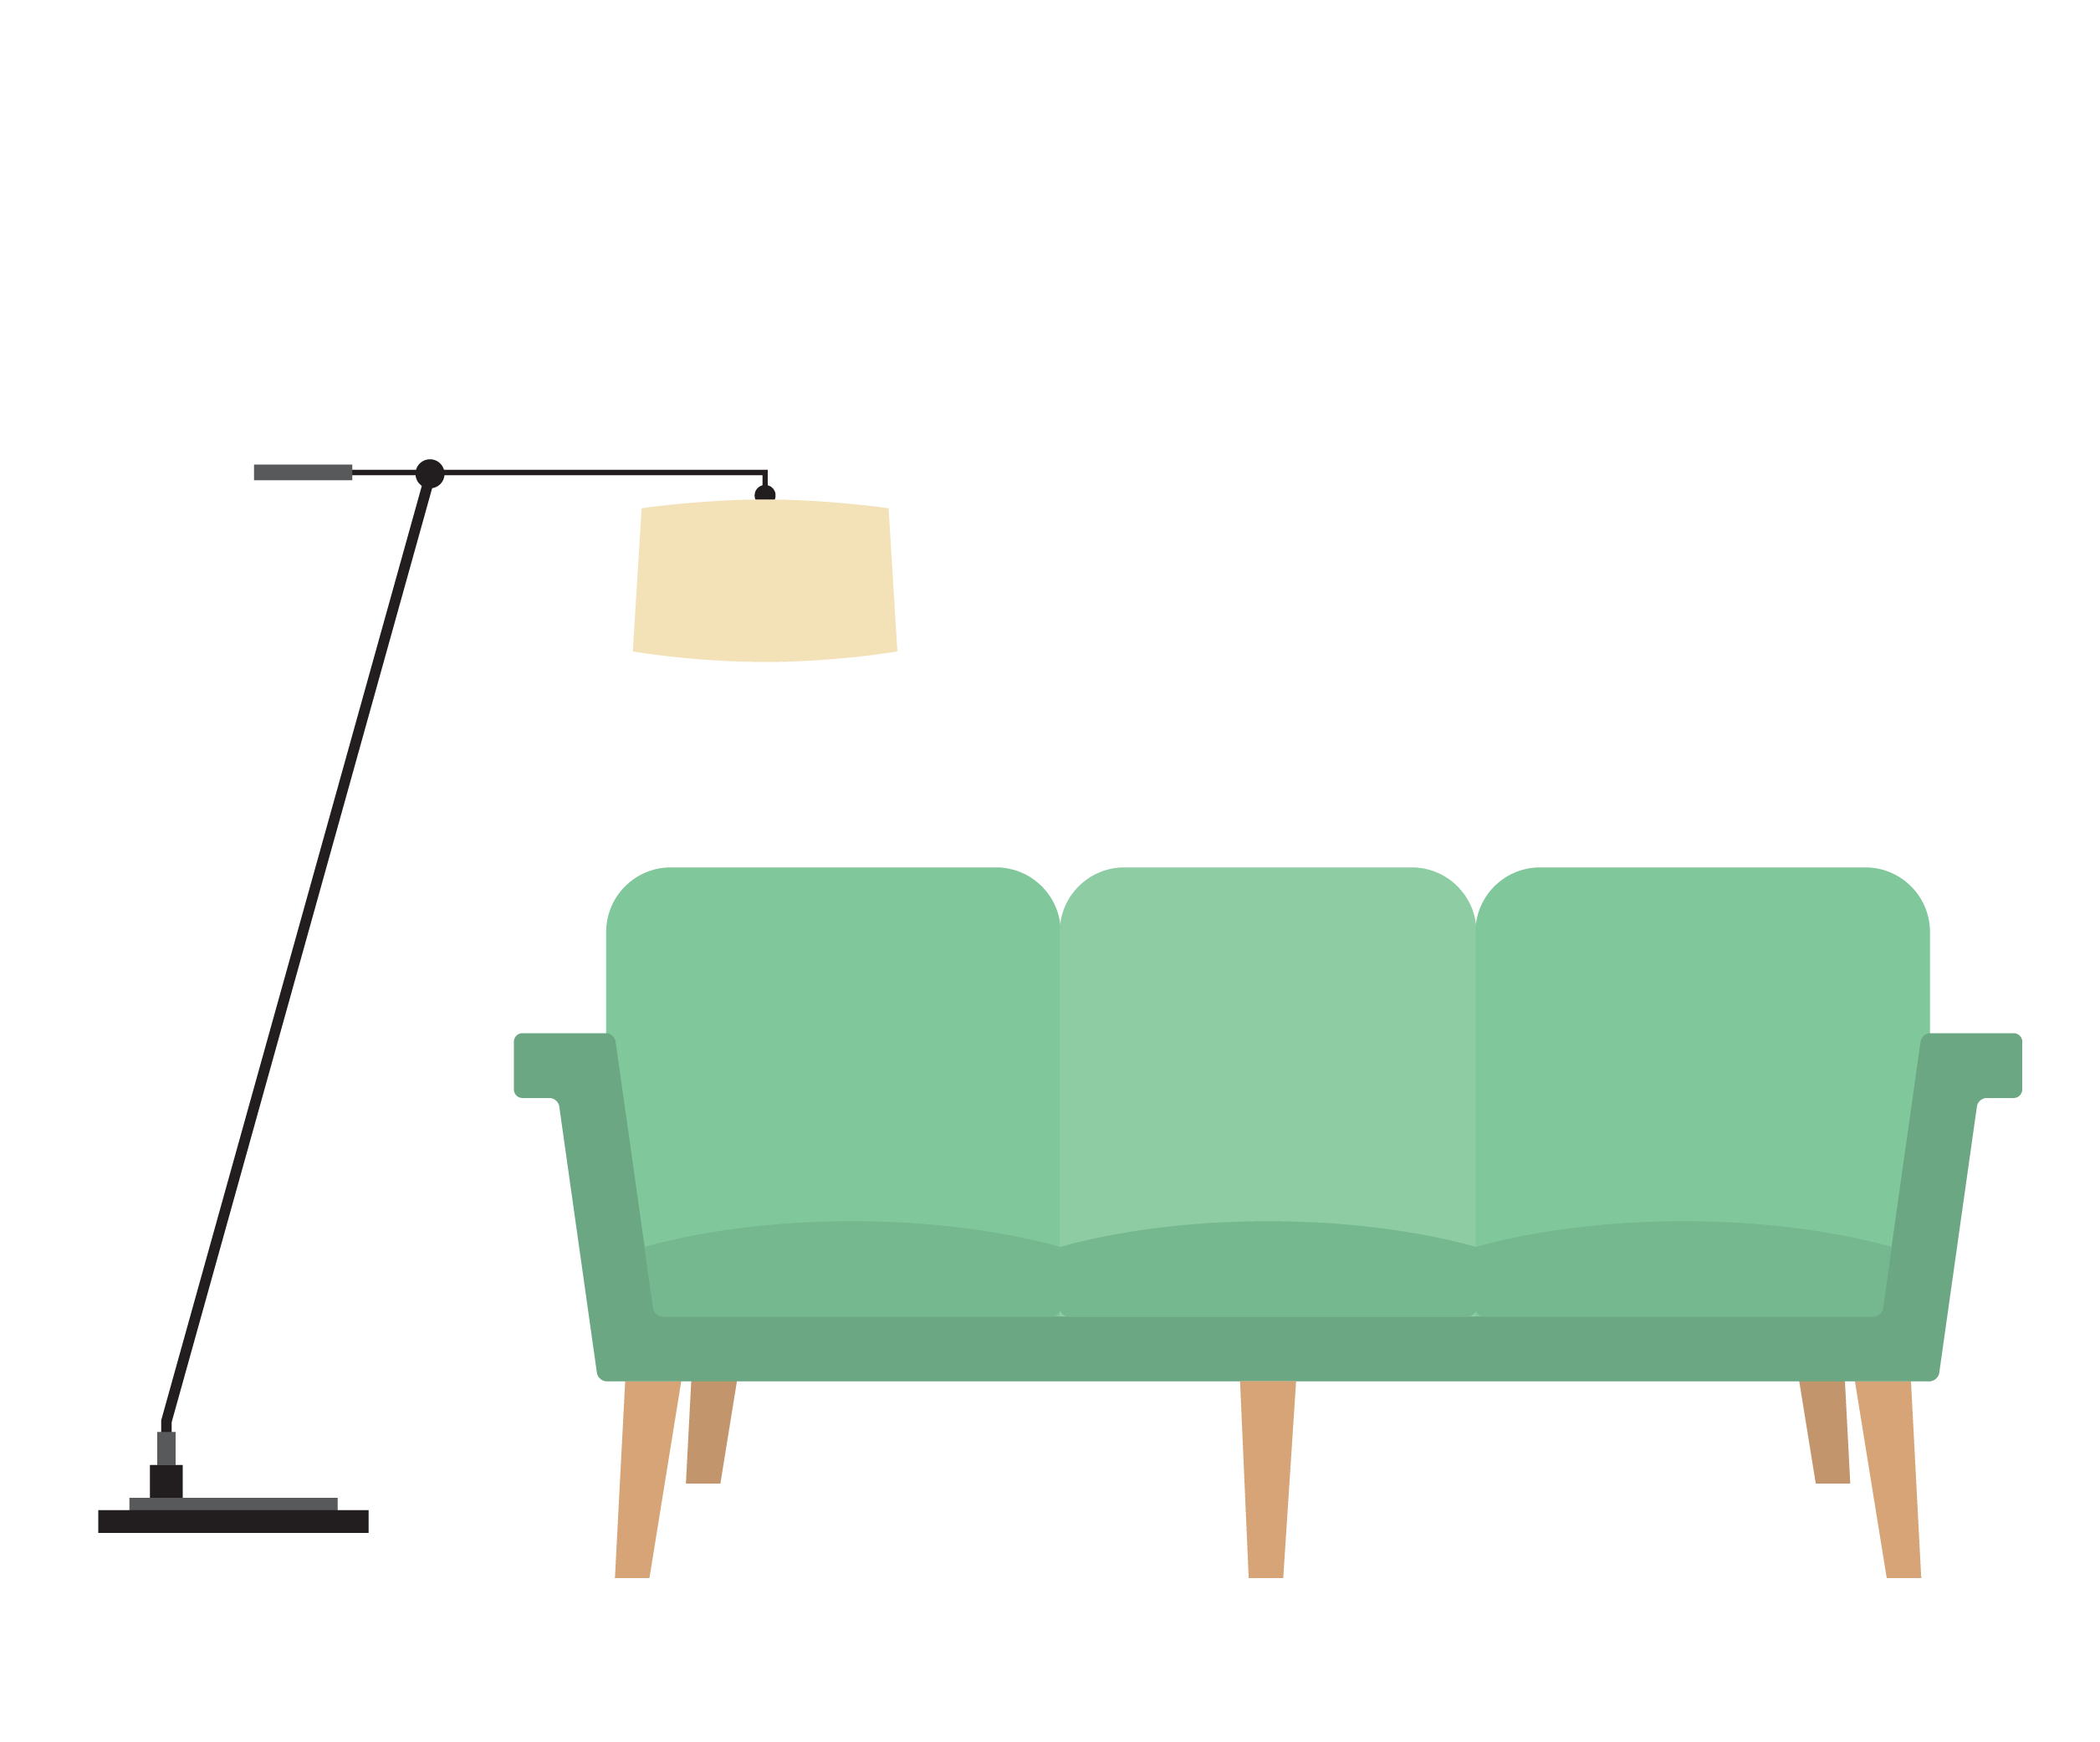 2511x2083 Table Living Room Euclidean Vector Drawing Room